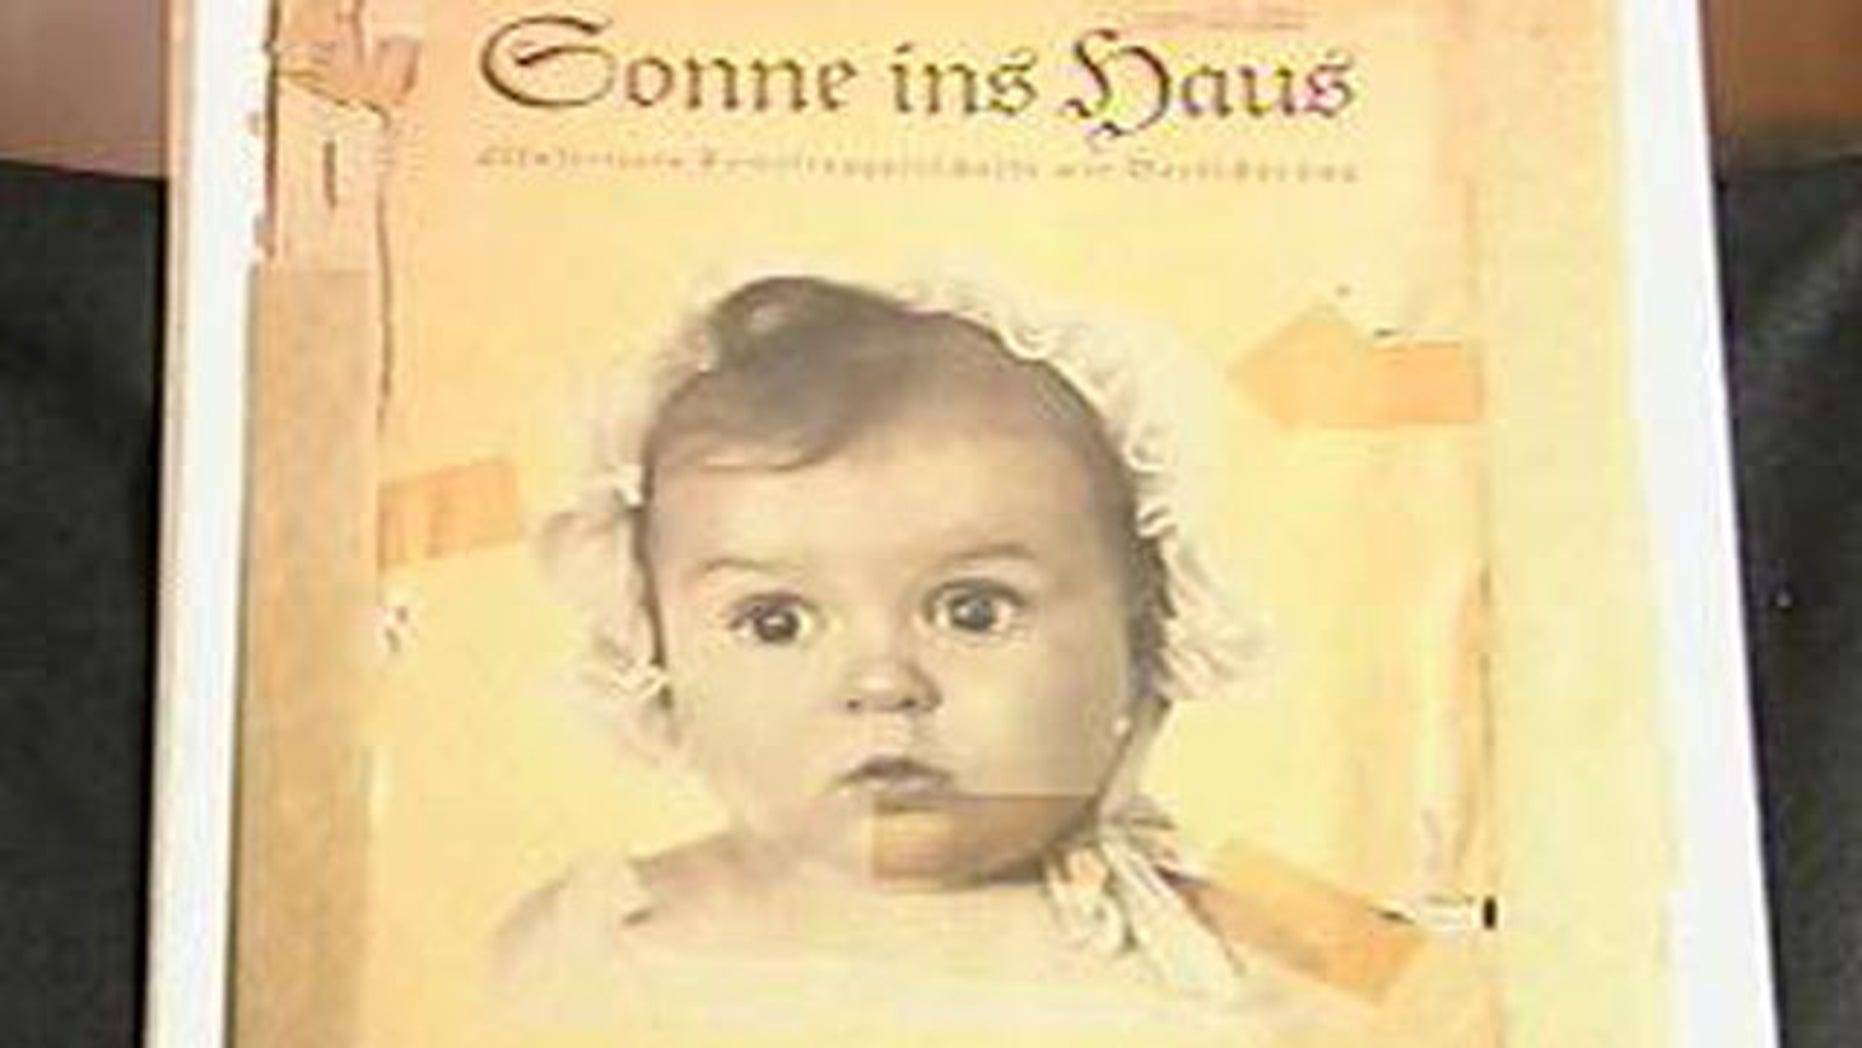 A picture of Hessy Taft as a baby that was featured in a Nazi magazine, as shown in an image excerpted from the video testimony of Hessy Taft's testimony courtesy of USC Shoah Foundation.